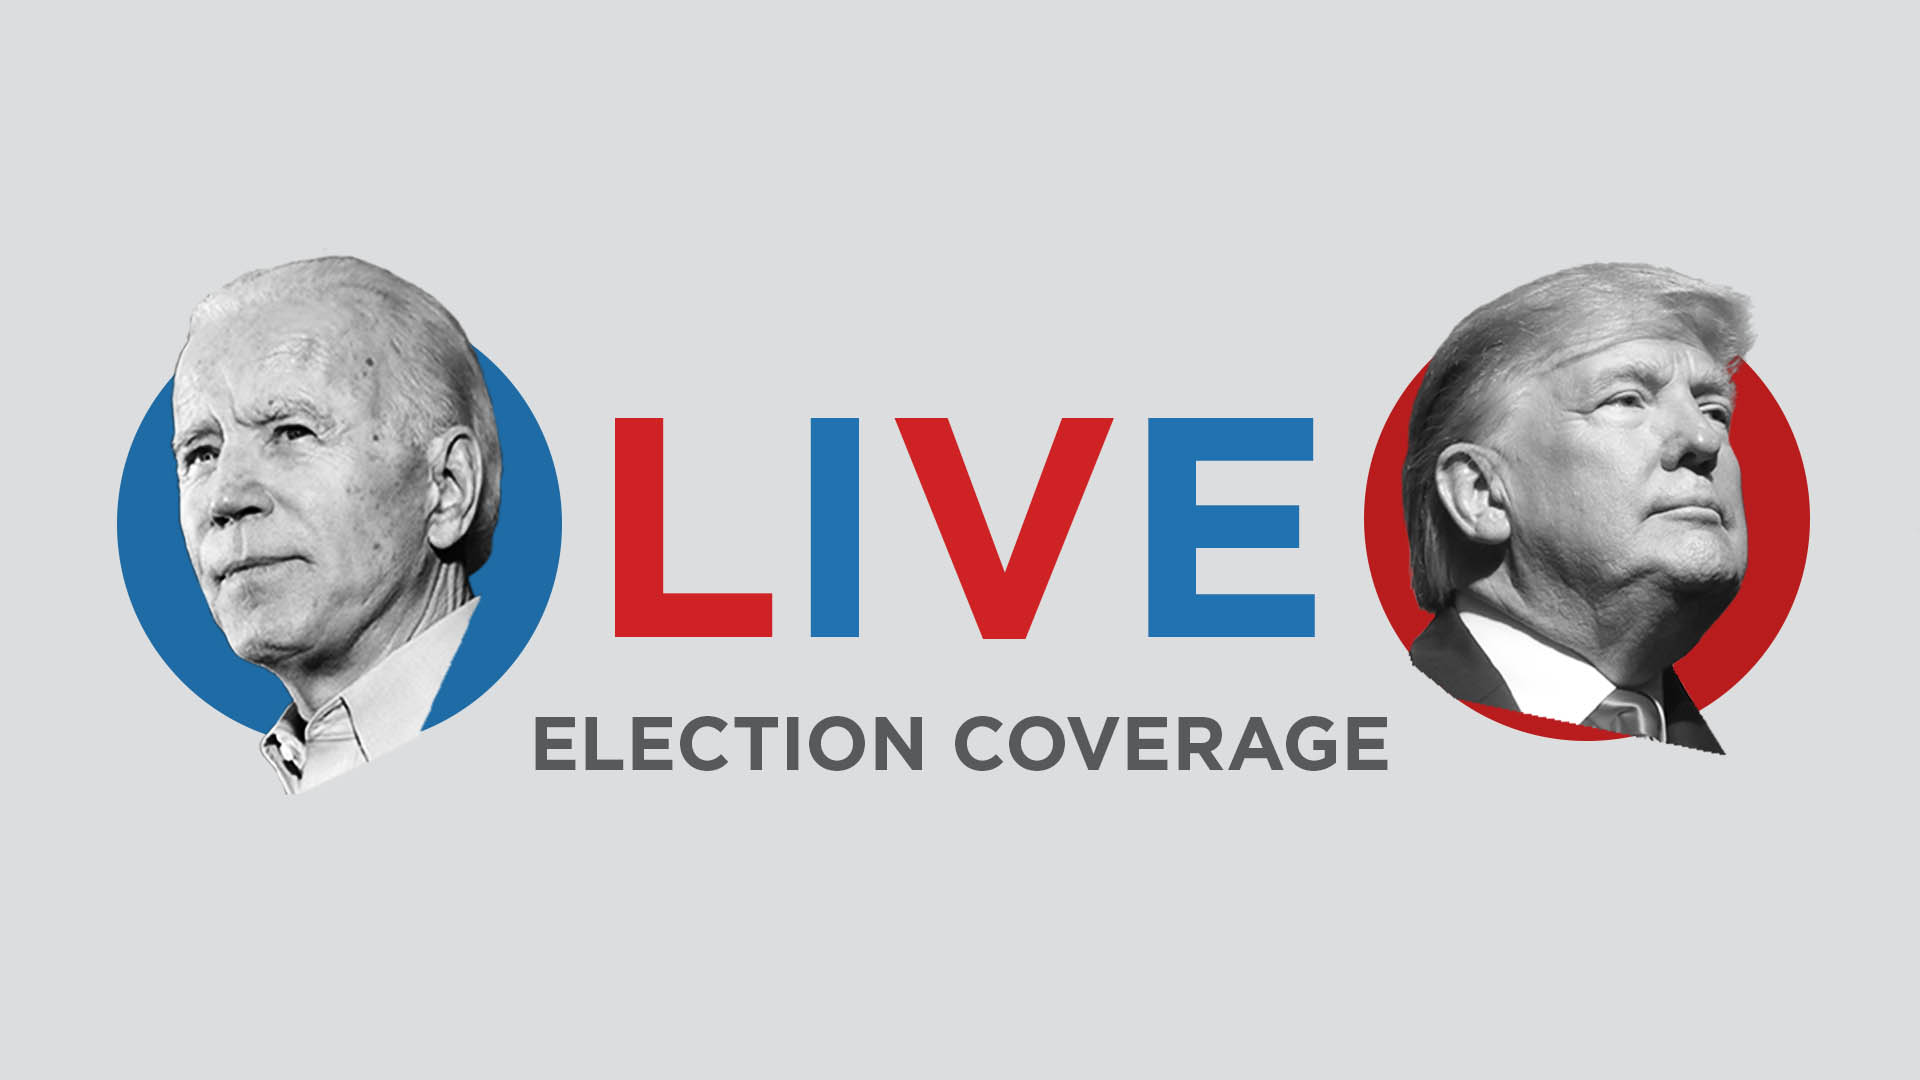 Live 2020 Election Updates And Results From Npr Boise State Public Radio Find the latest breaking news and information on the top stories, weather, business, entertainment, politics, and more. boise state public radio